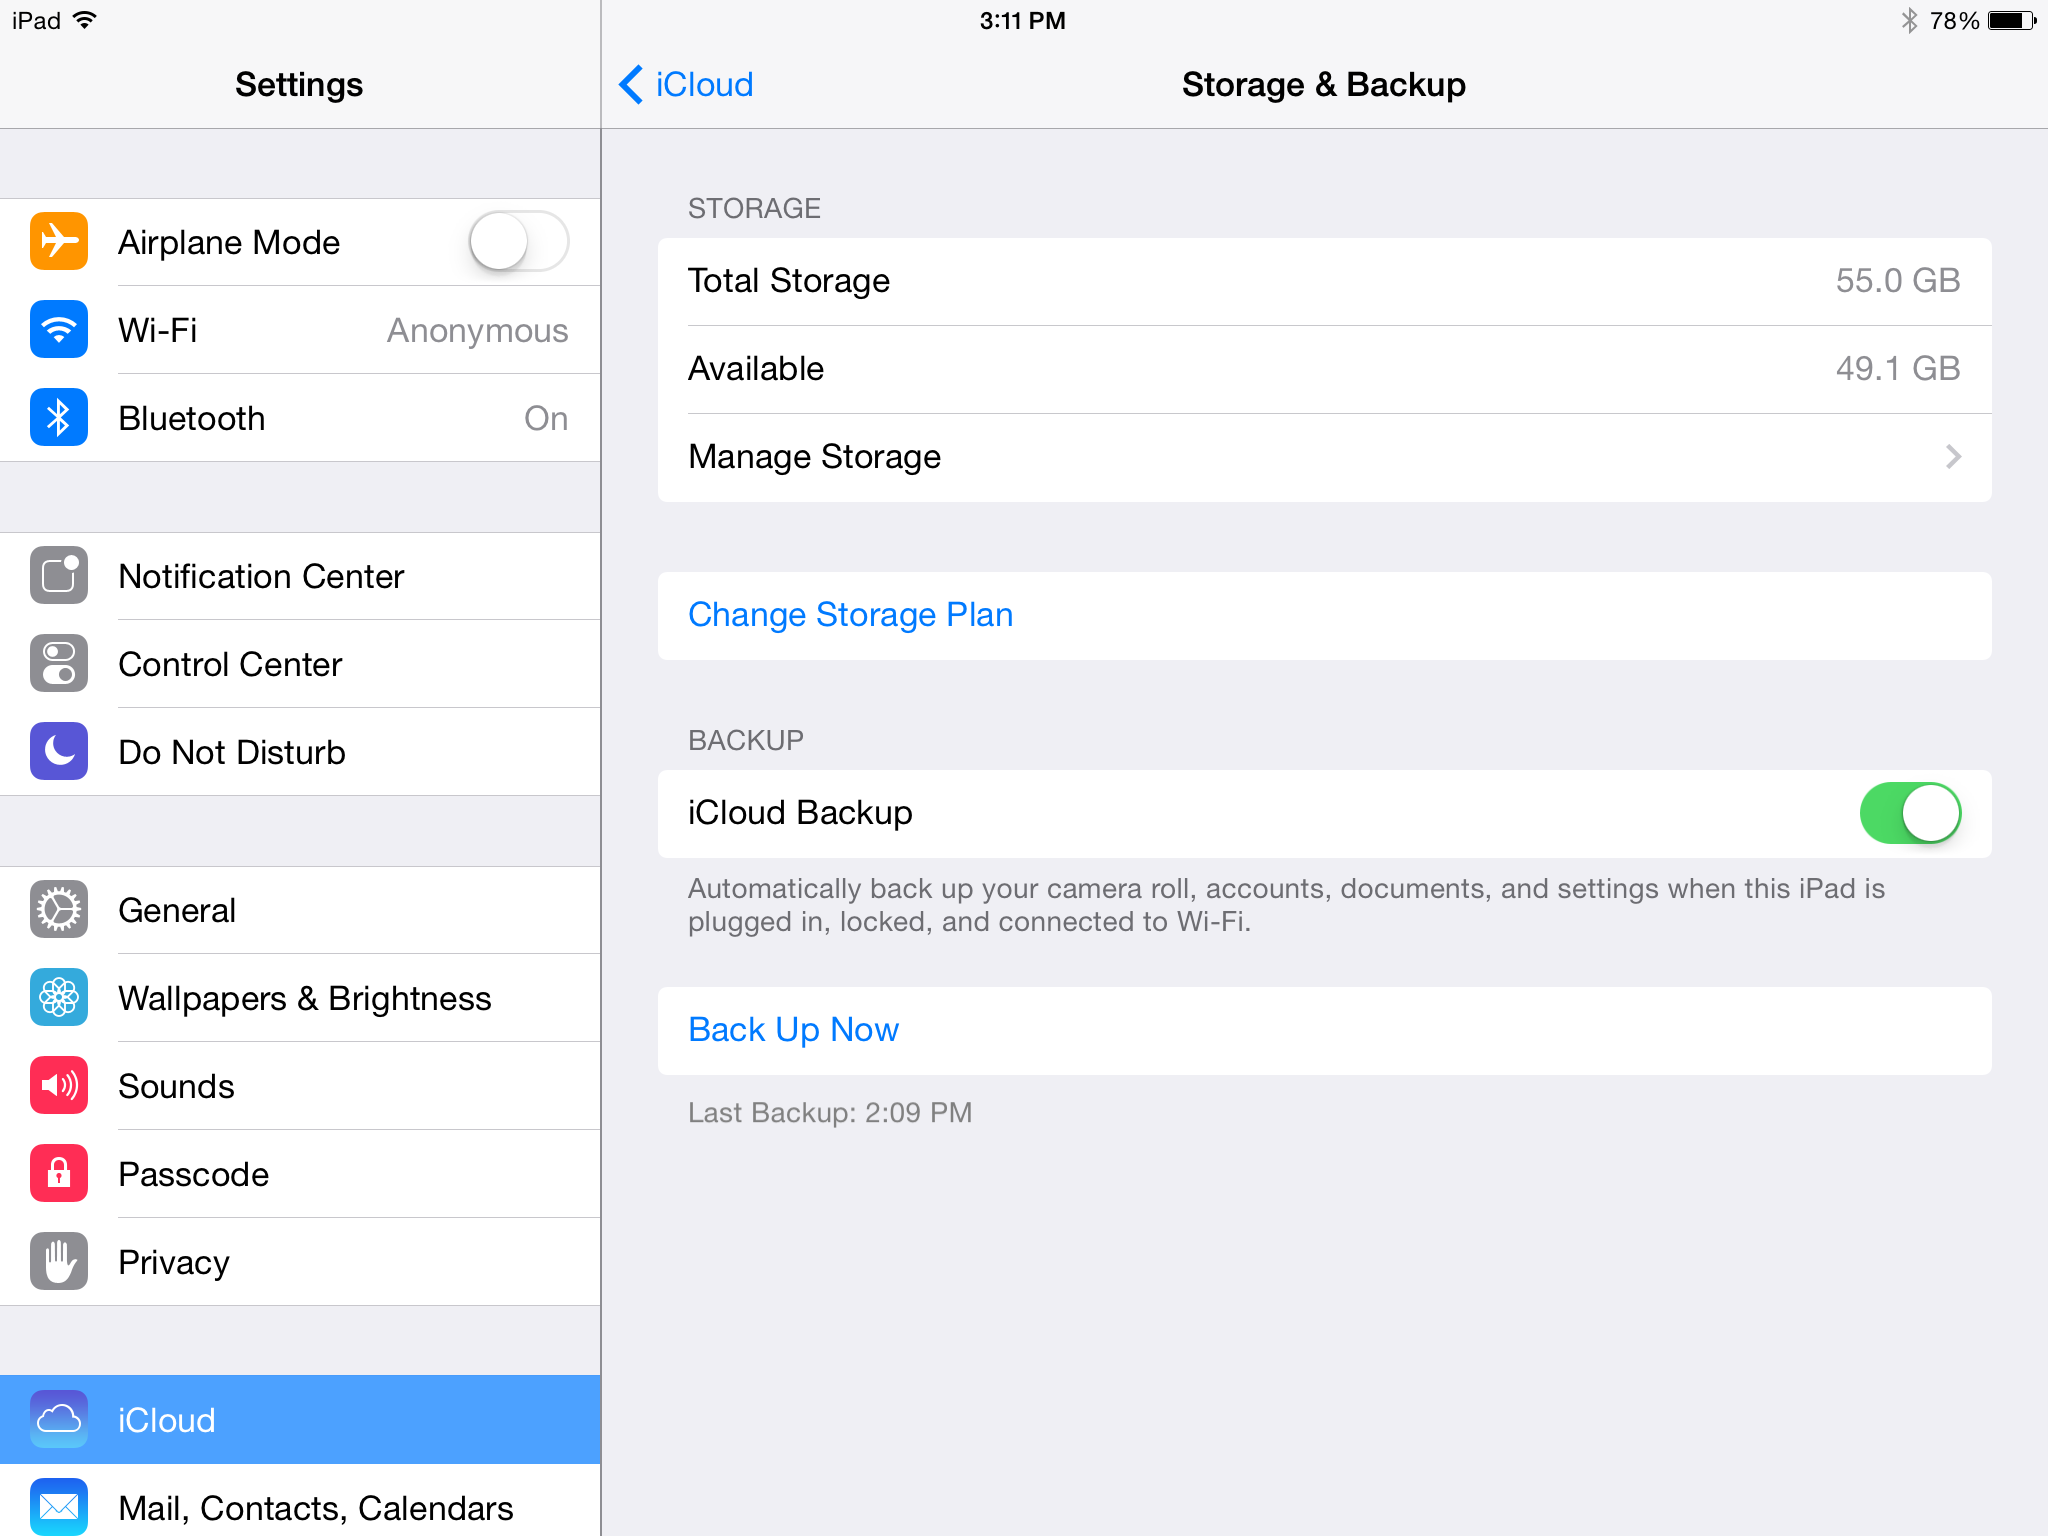 How to get your old photos off icloud